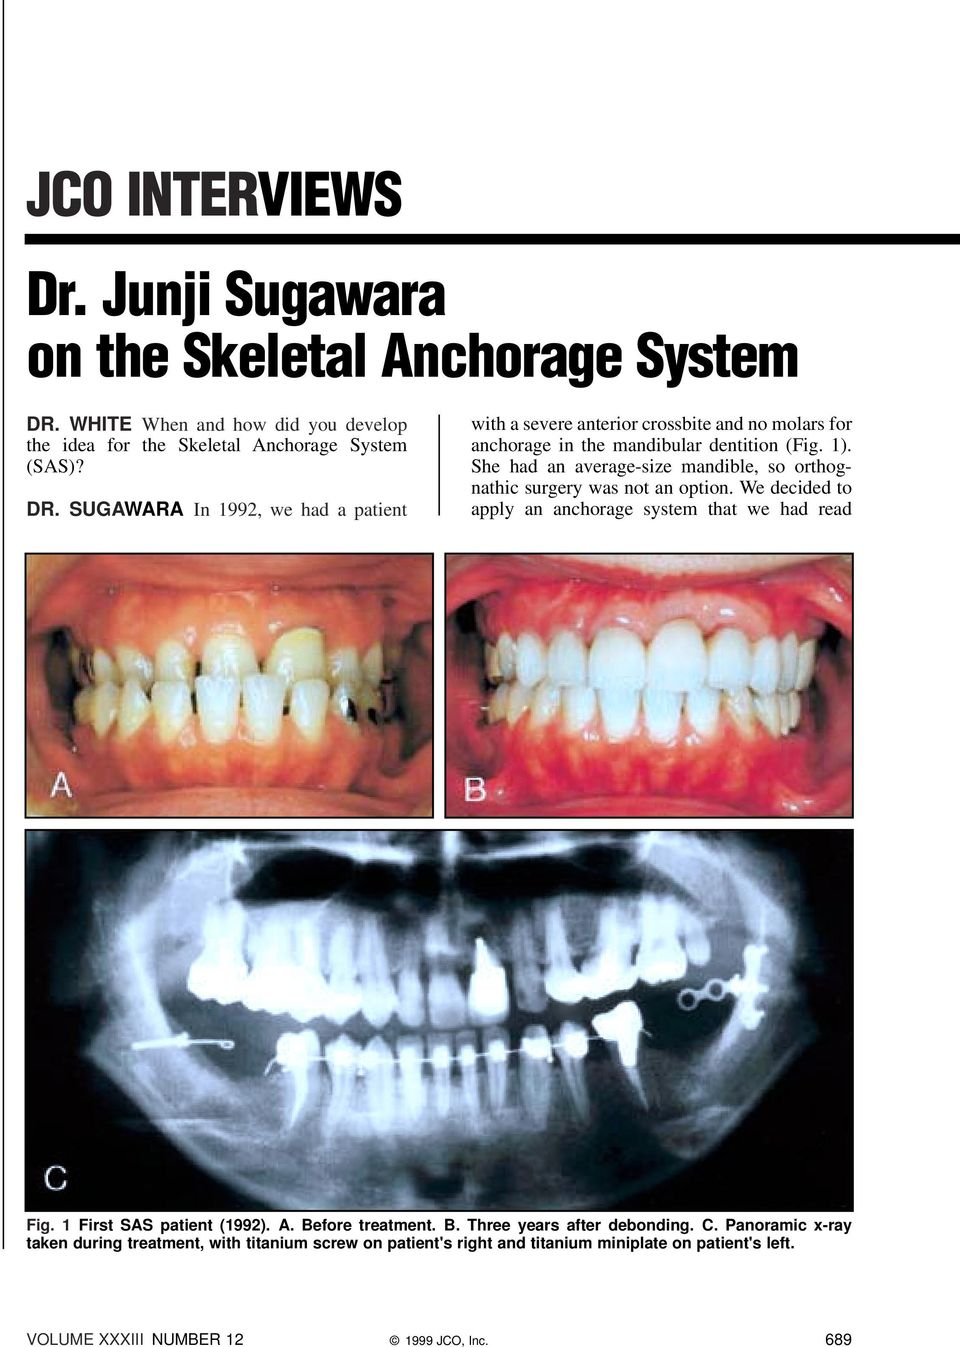 SUGAWARA In 1992, we had a patient with a severe anterior crossbite and no molars for anchorage in the mandibular dentition (Fig. 1).